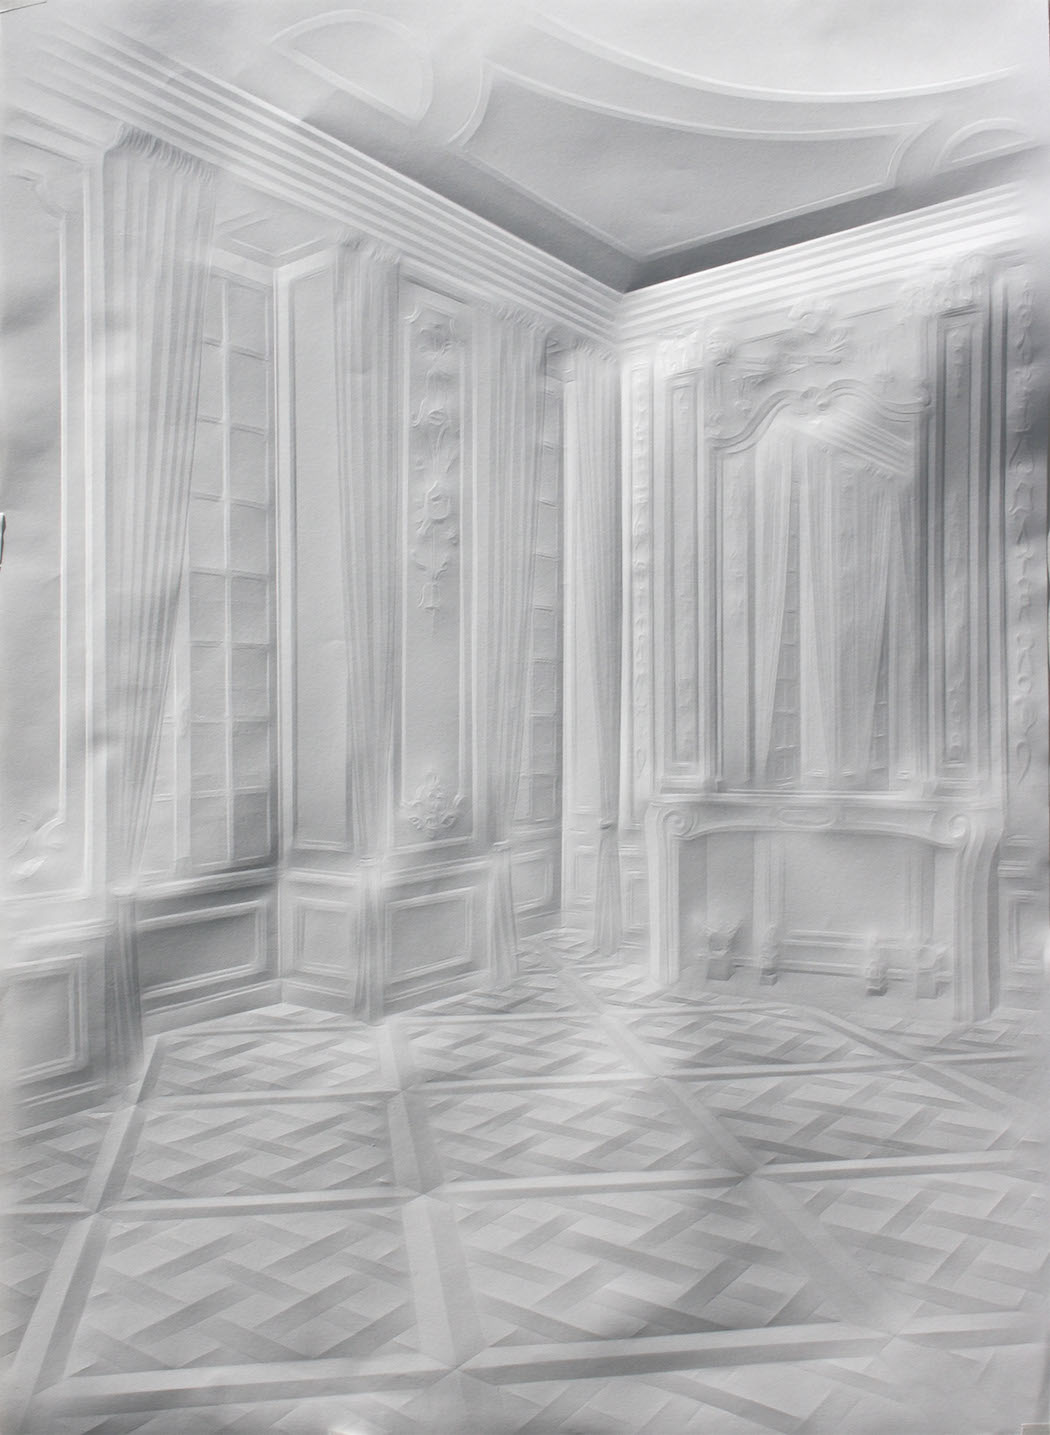 simonschubert(hallway with curtains),2013,70x50